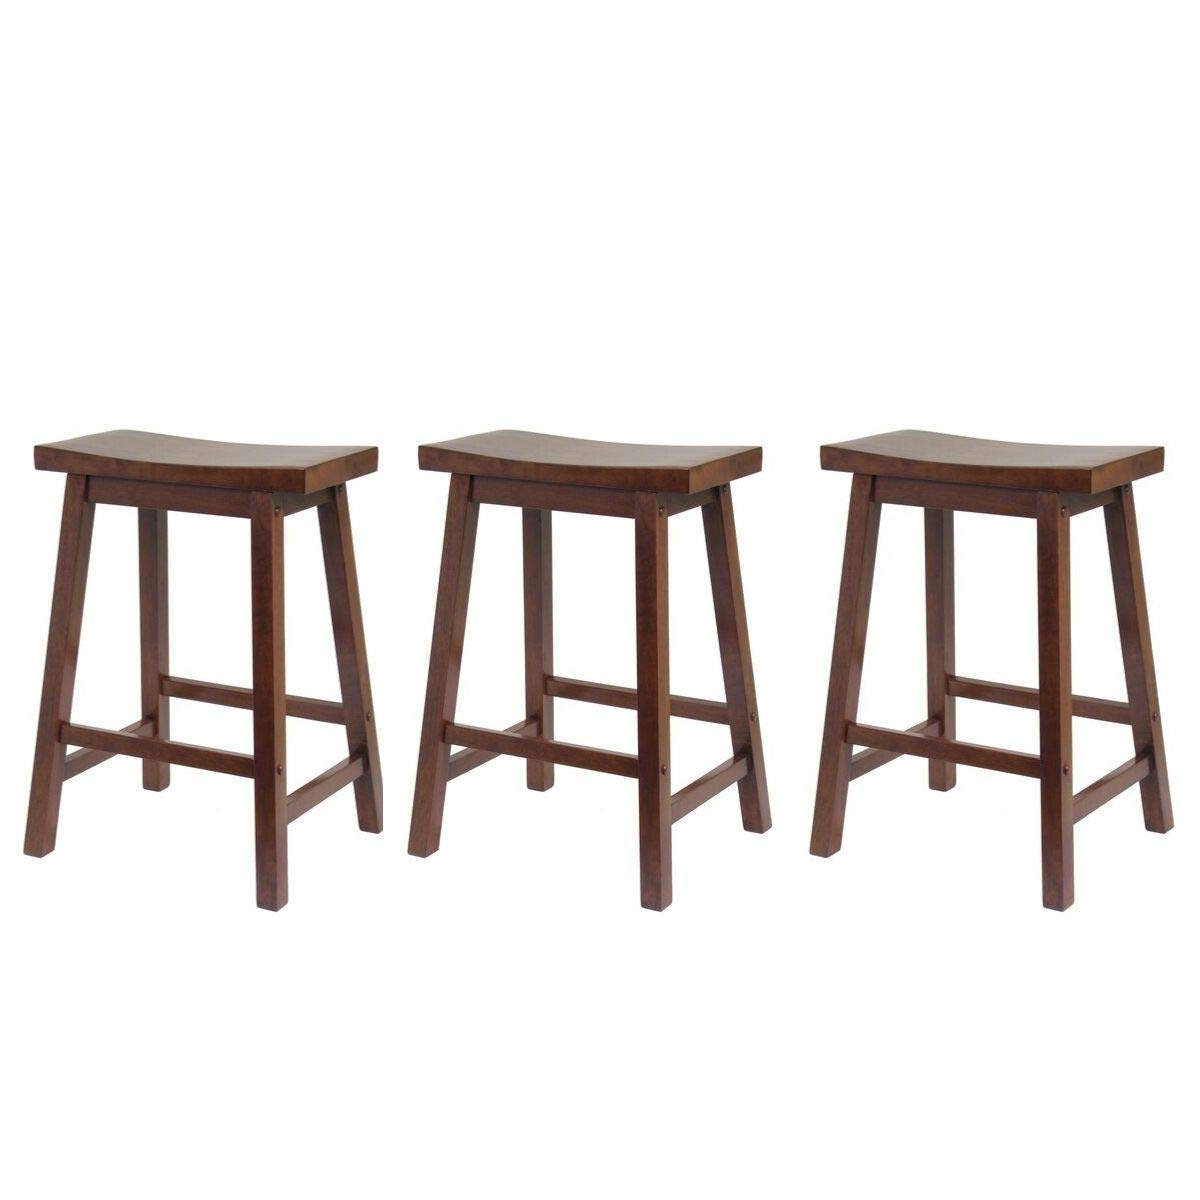 Winsome Wood Satori Saddle Seat Counter Stool, 24 , Walnut Set of 3